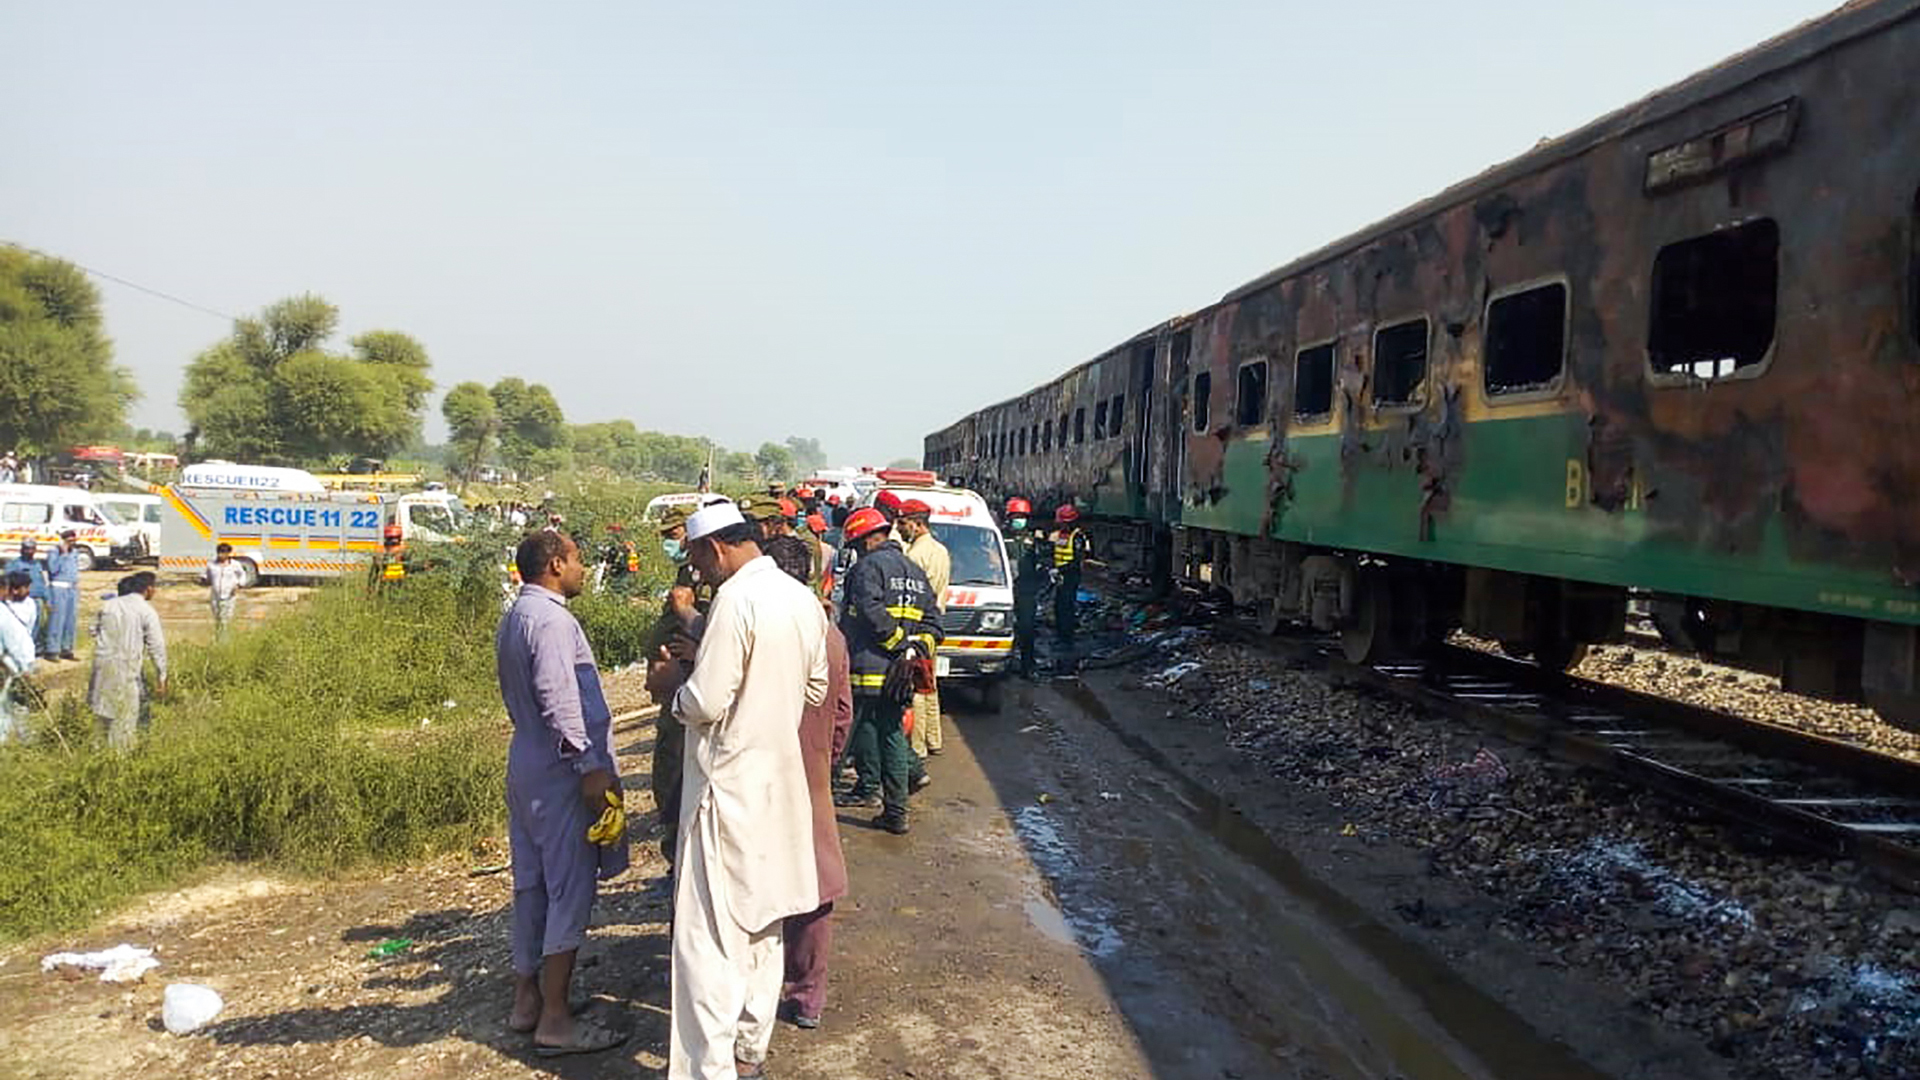 Rescue workers gather beside the burnt-out train carriages after a passenger train caught on fire near Rahim Yar Khan in Punjab province on October 31, 2019. (Credit: AFP via Getty Images)